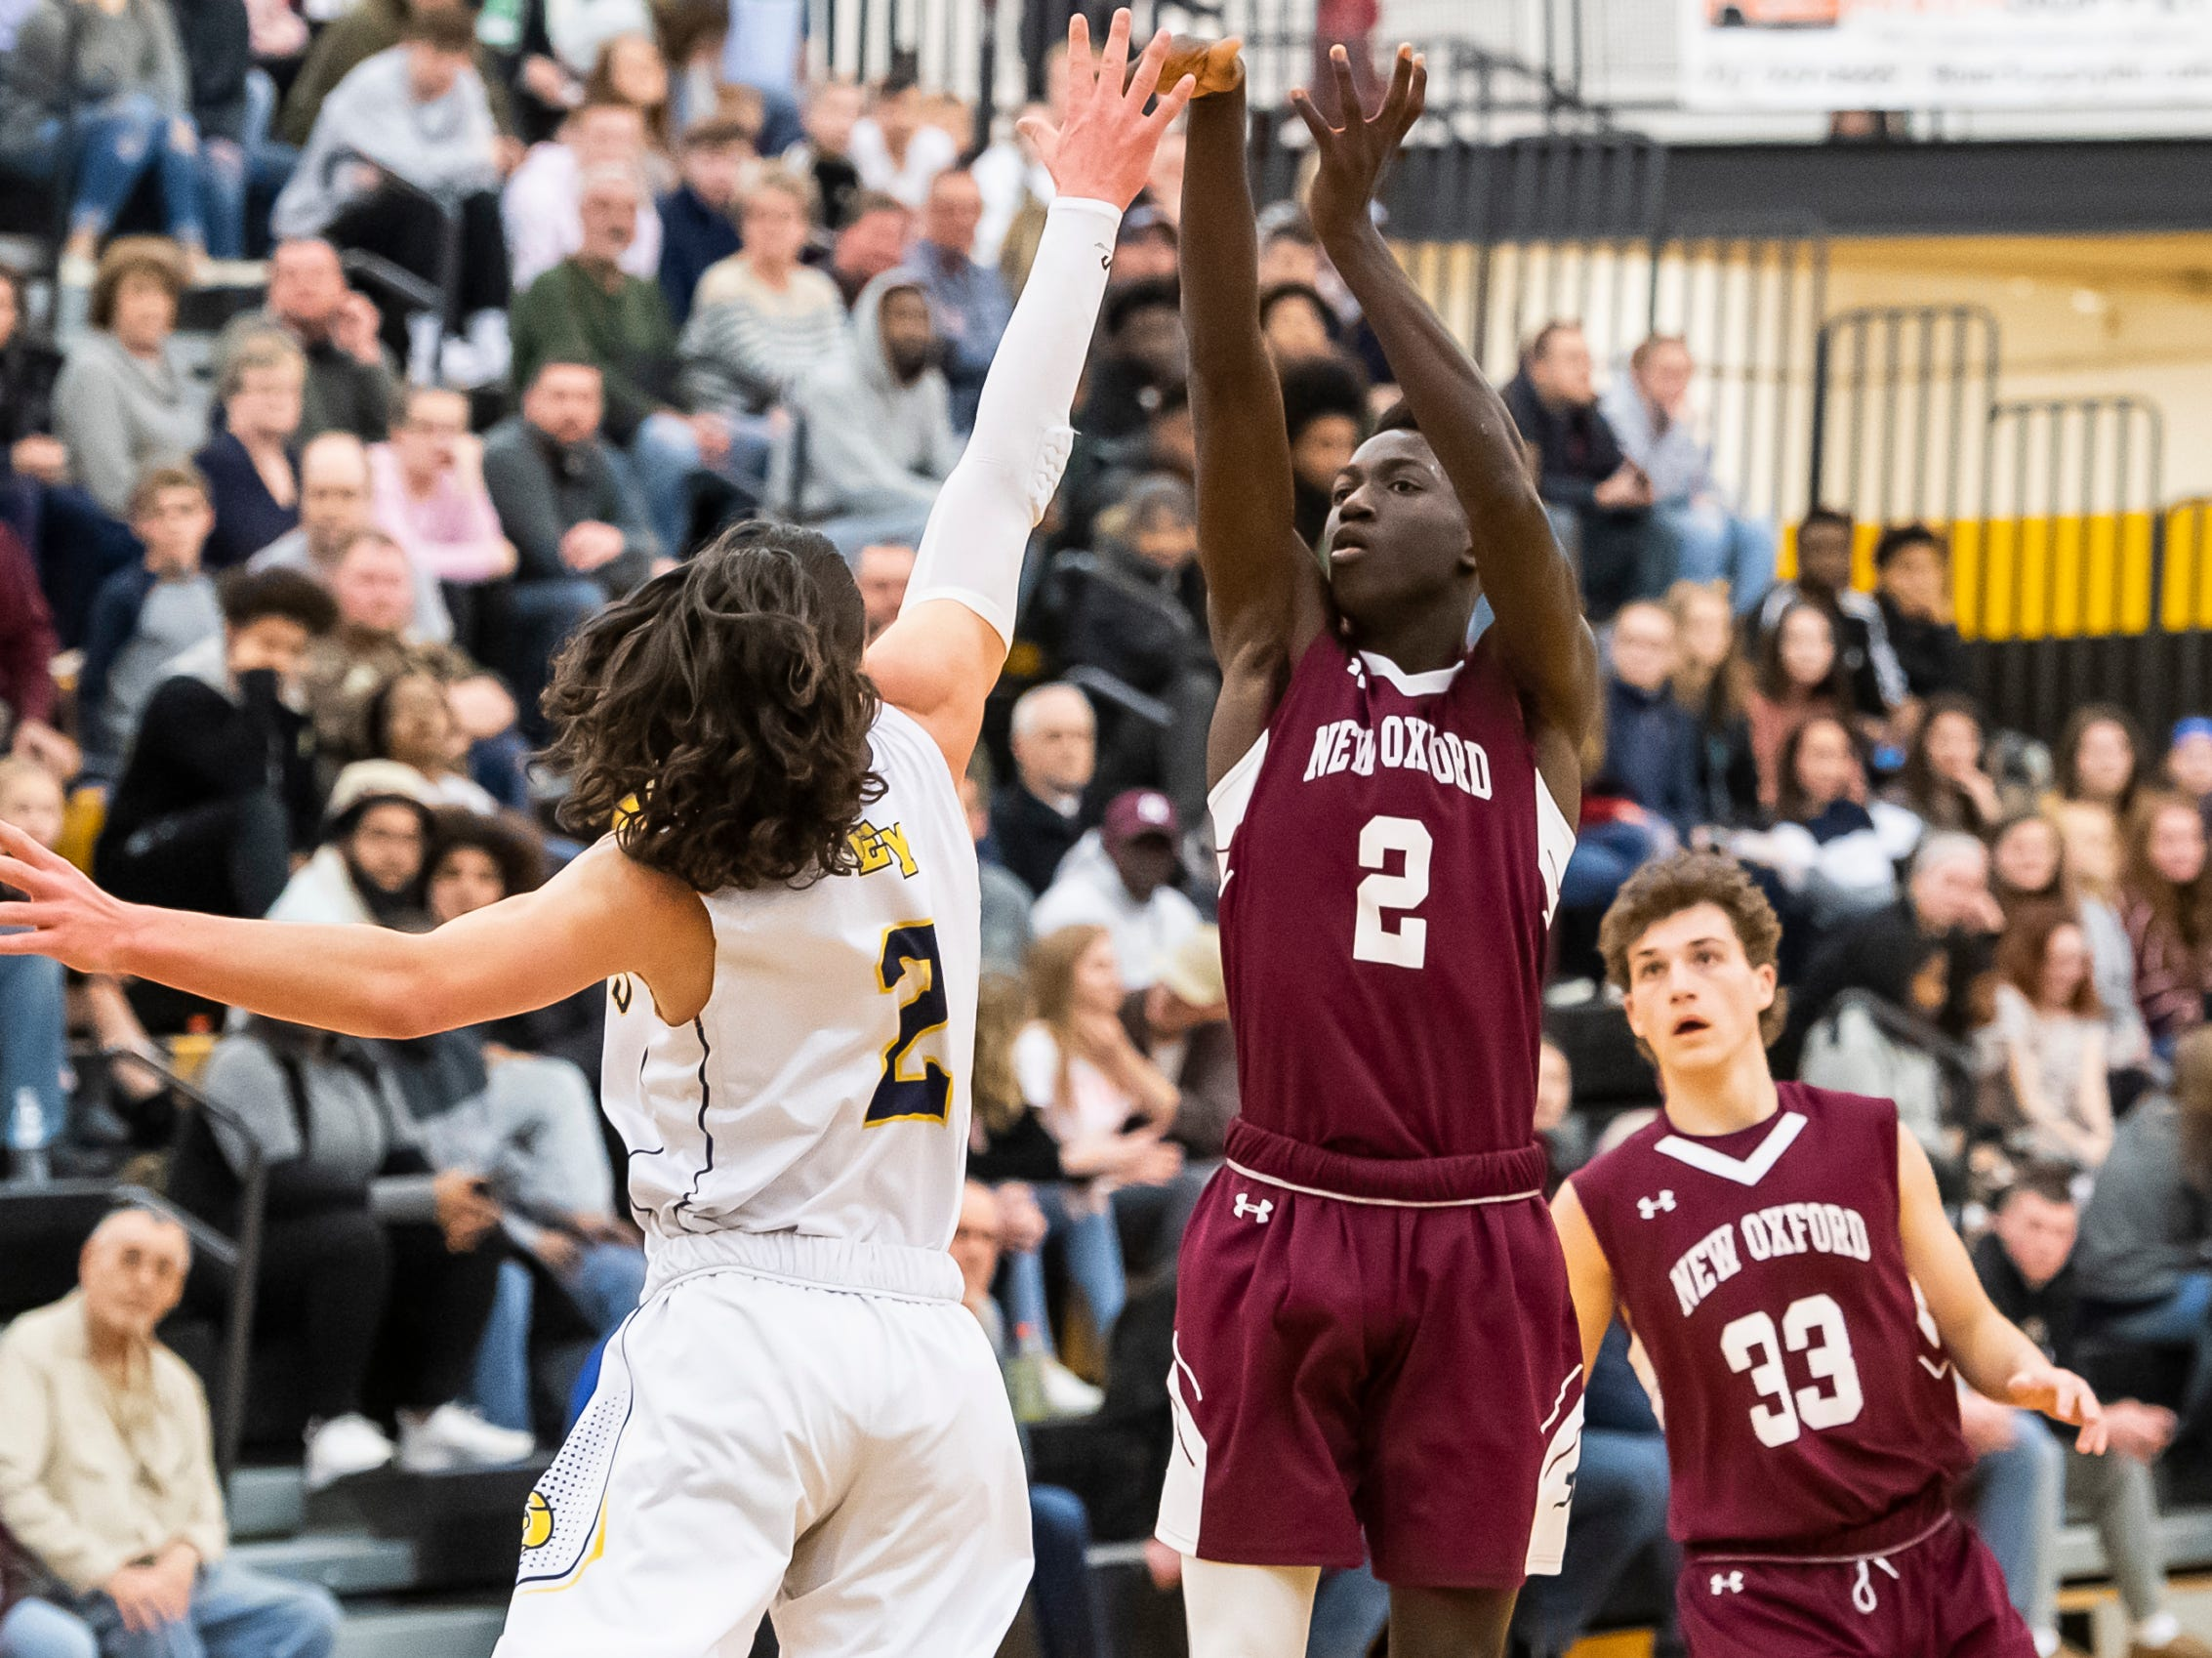 New Oxford's Abdul Janneh take a 3-point shot during play against Eastern York in a YAIAA quarterfinal game at Red Lion High School Saturday, February 9, 2019. Janneh led all players with 20 points.